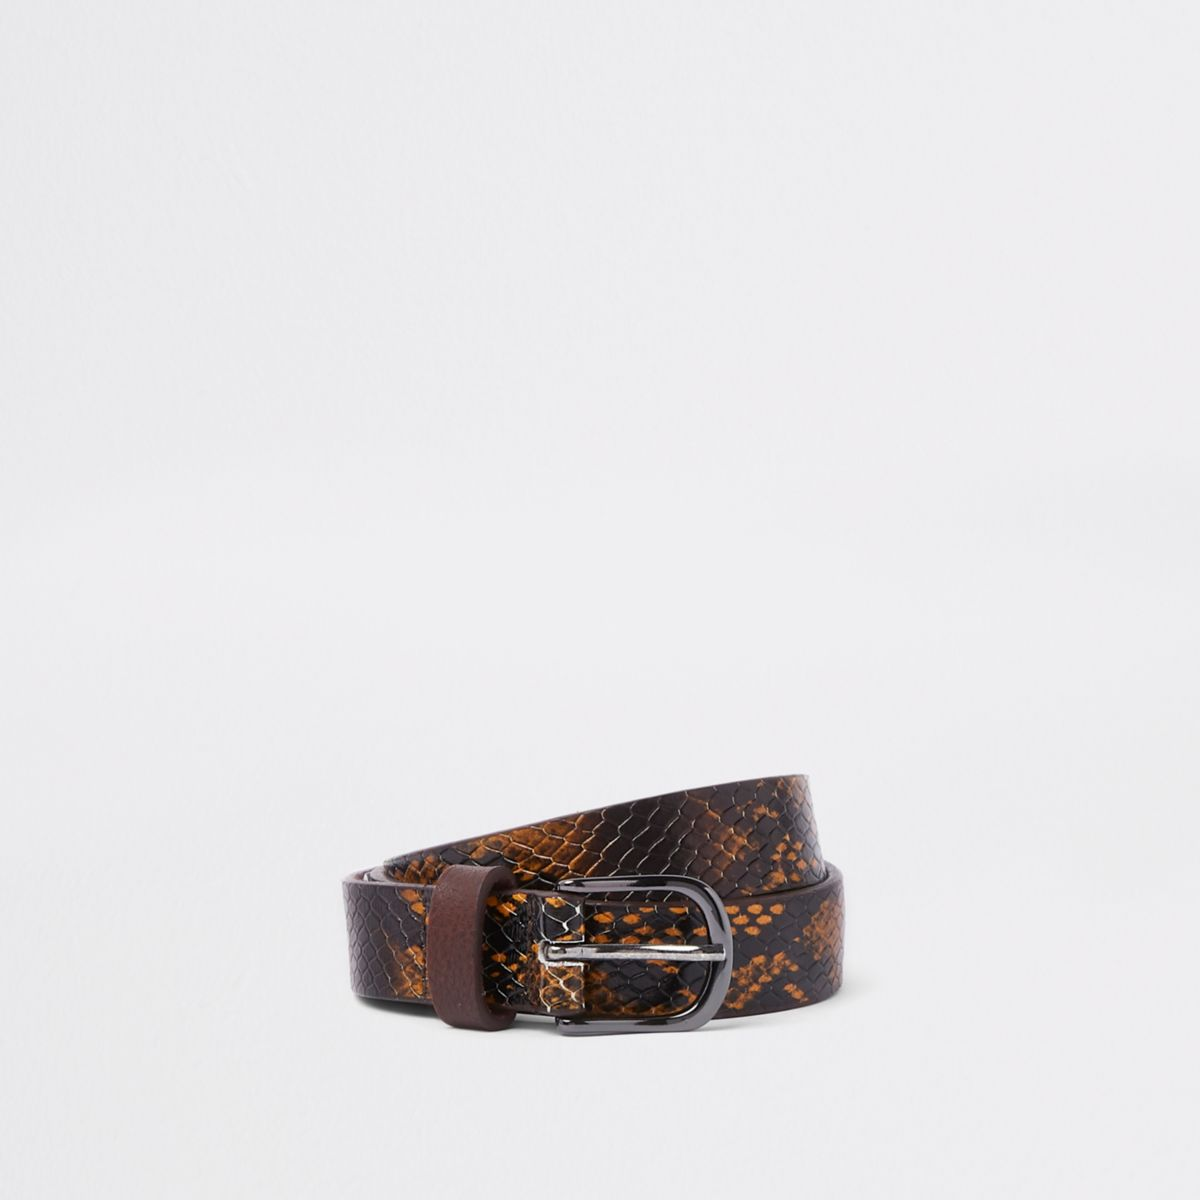 Brown snakeskin belt